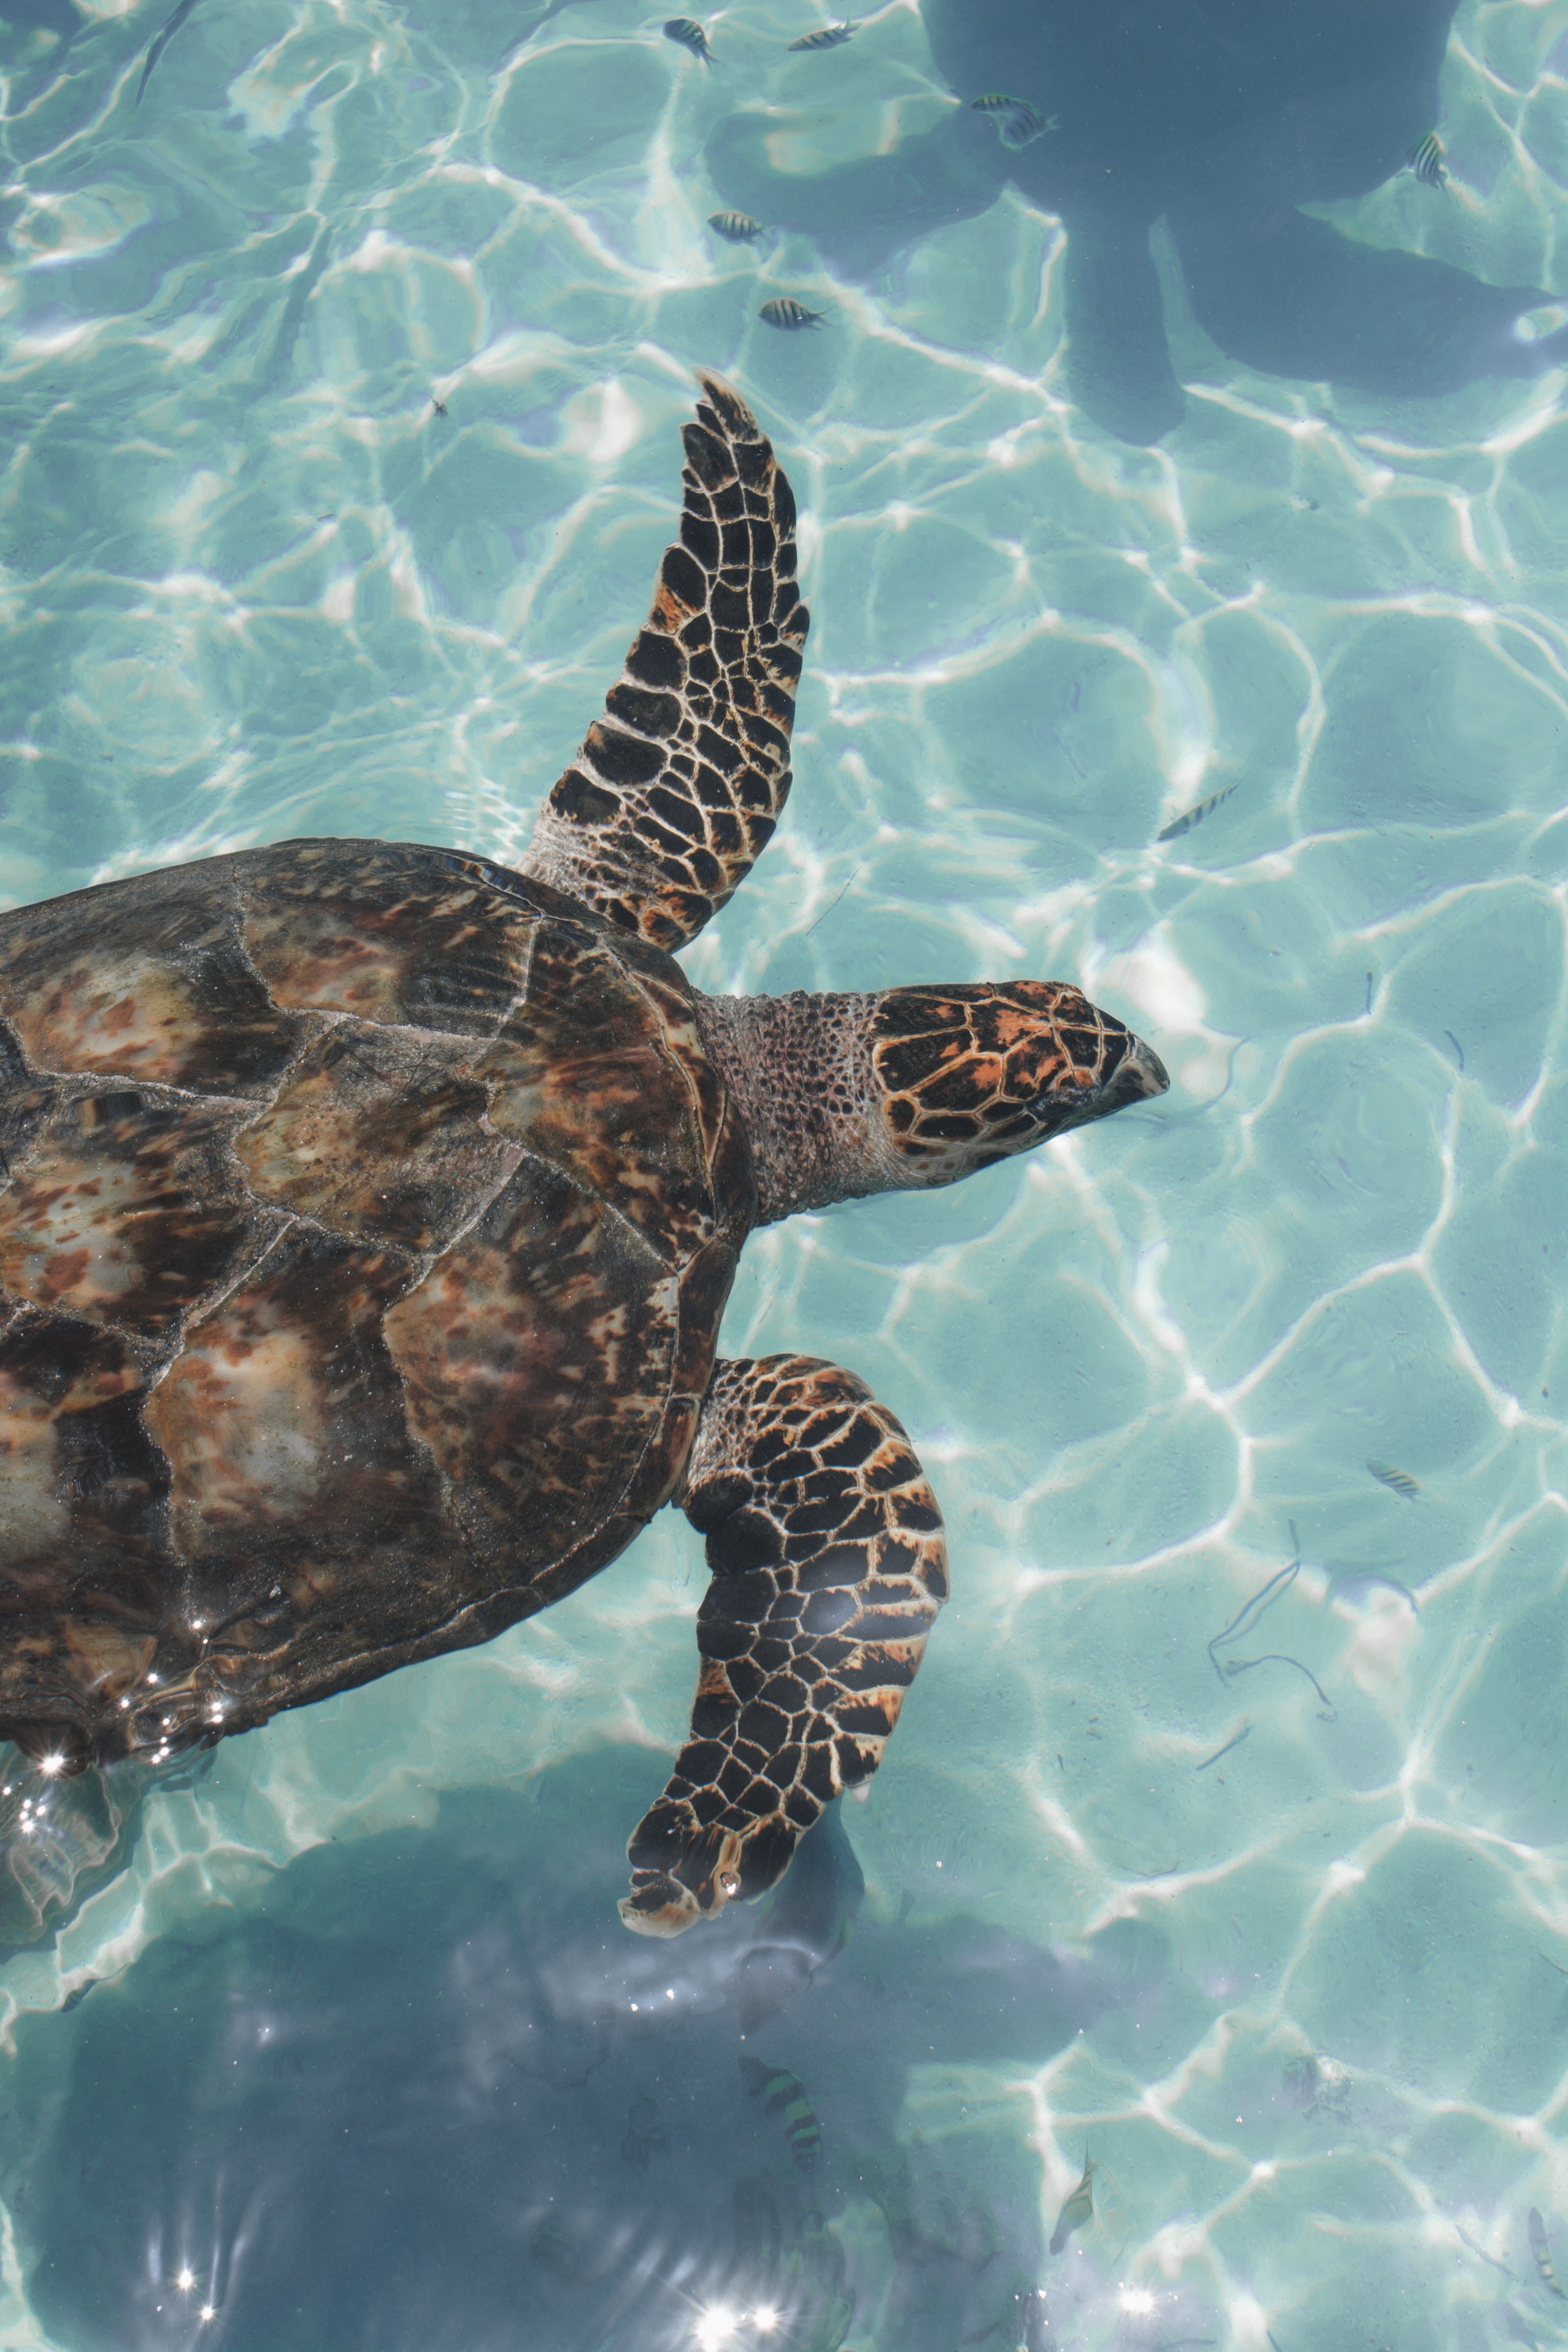 142620 download wallpaper Animals, Turtle, Water, To Swim, Swim, Waves, Fishes screensavers and pictures for free